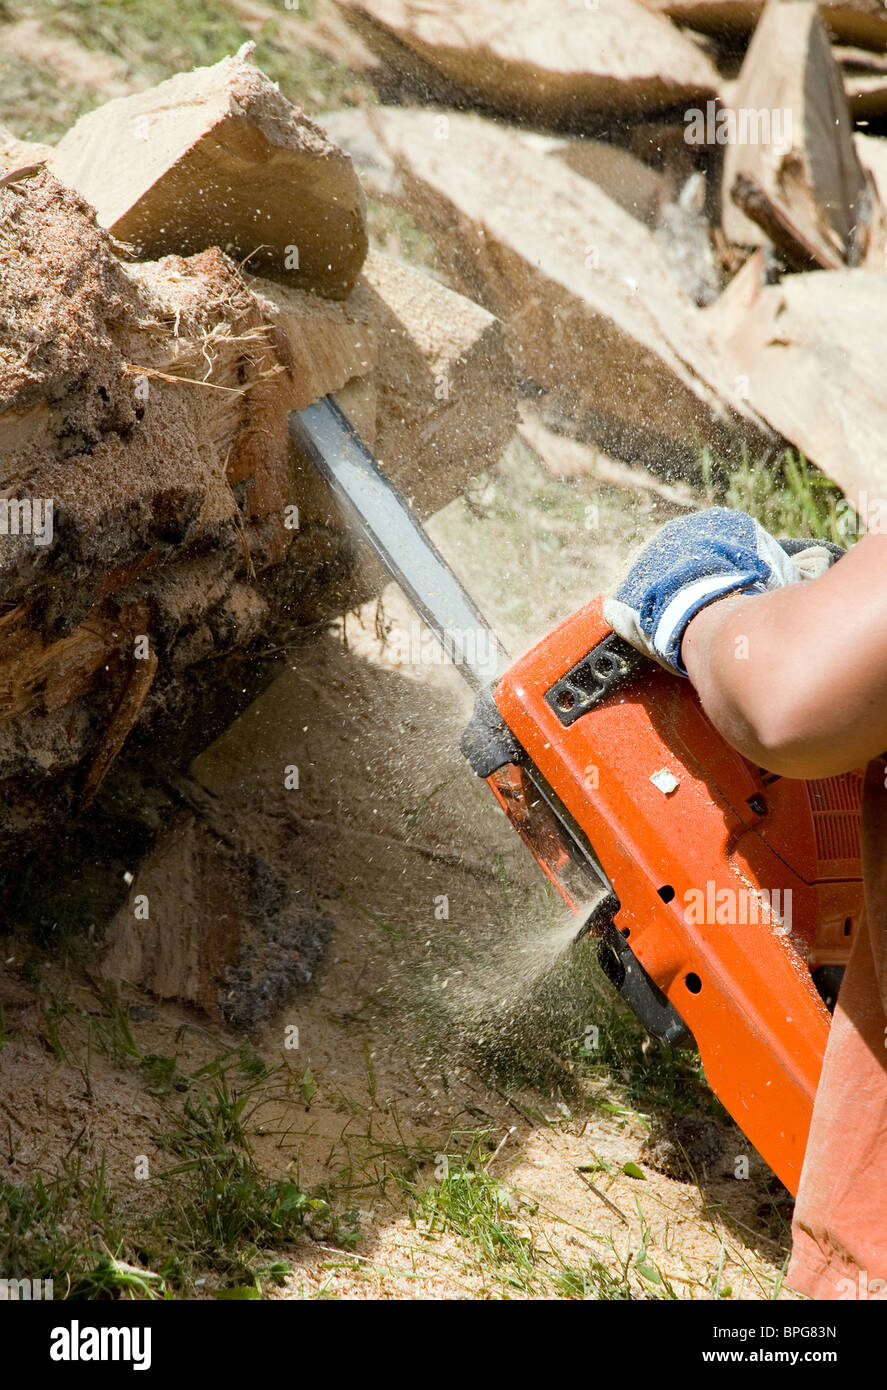 Worker Using Chain Saw to Cut out Wood Sculpture Stock Photo